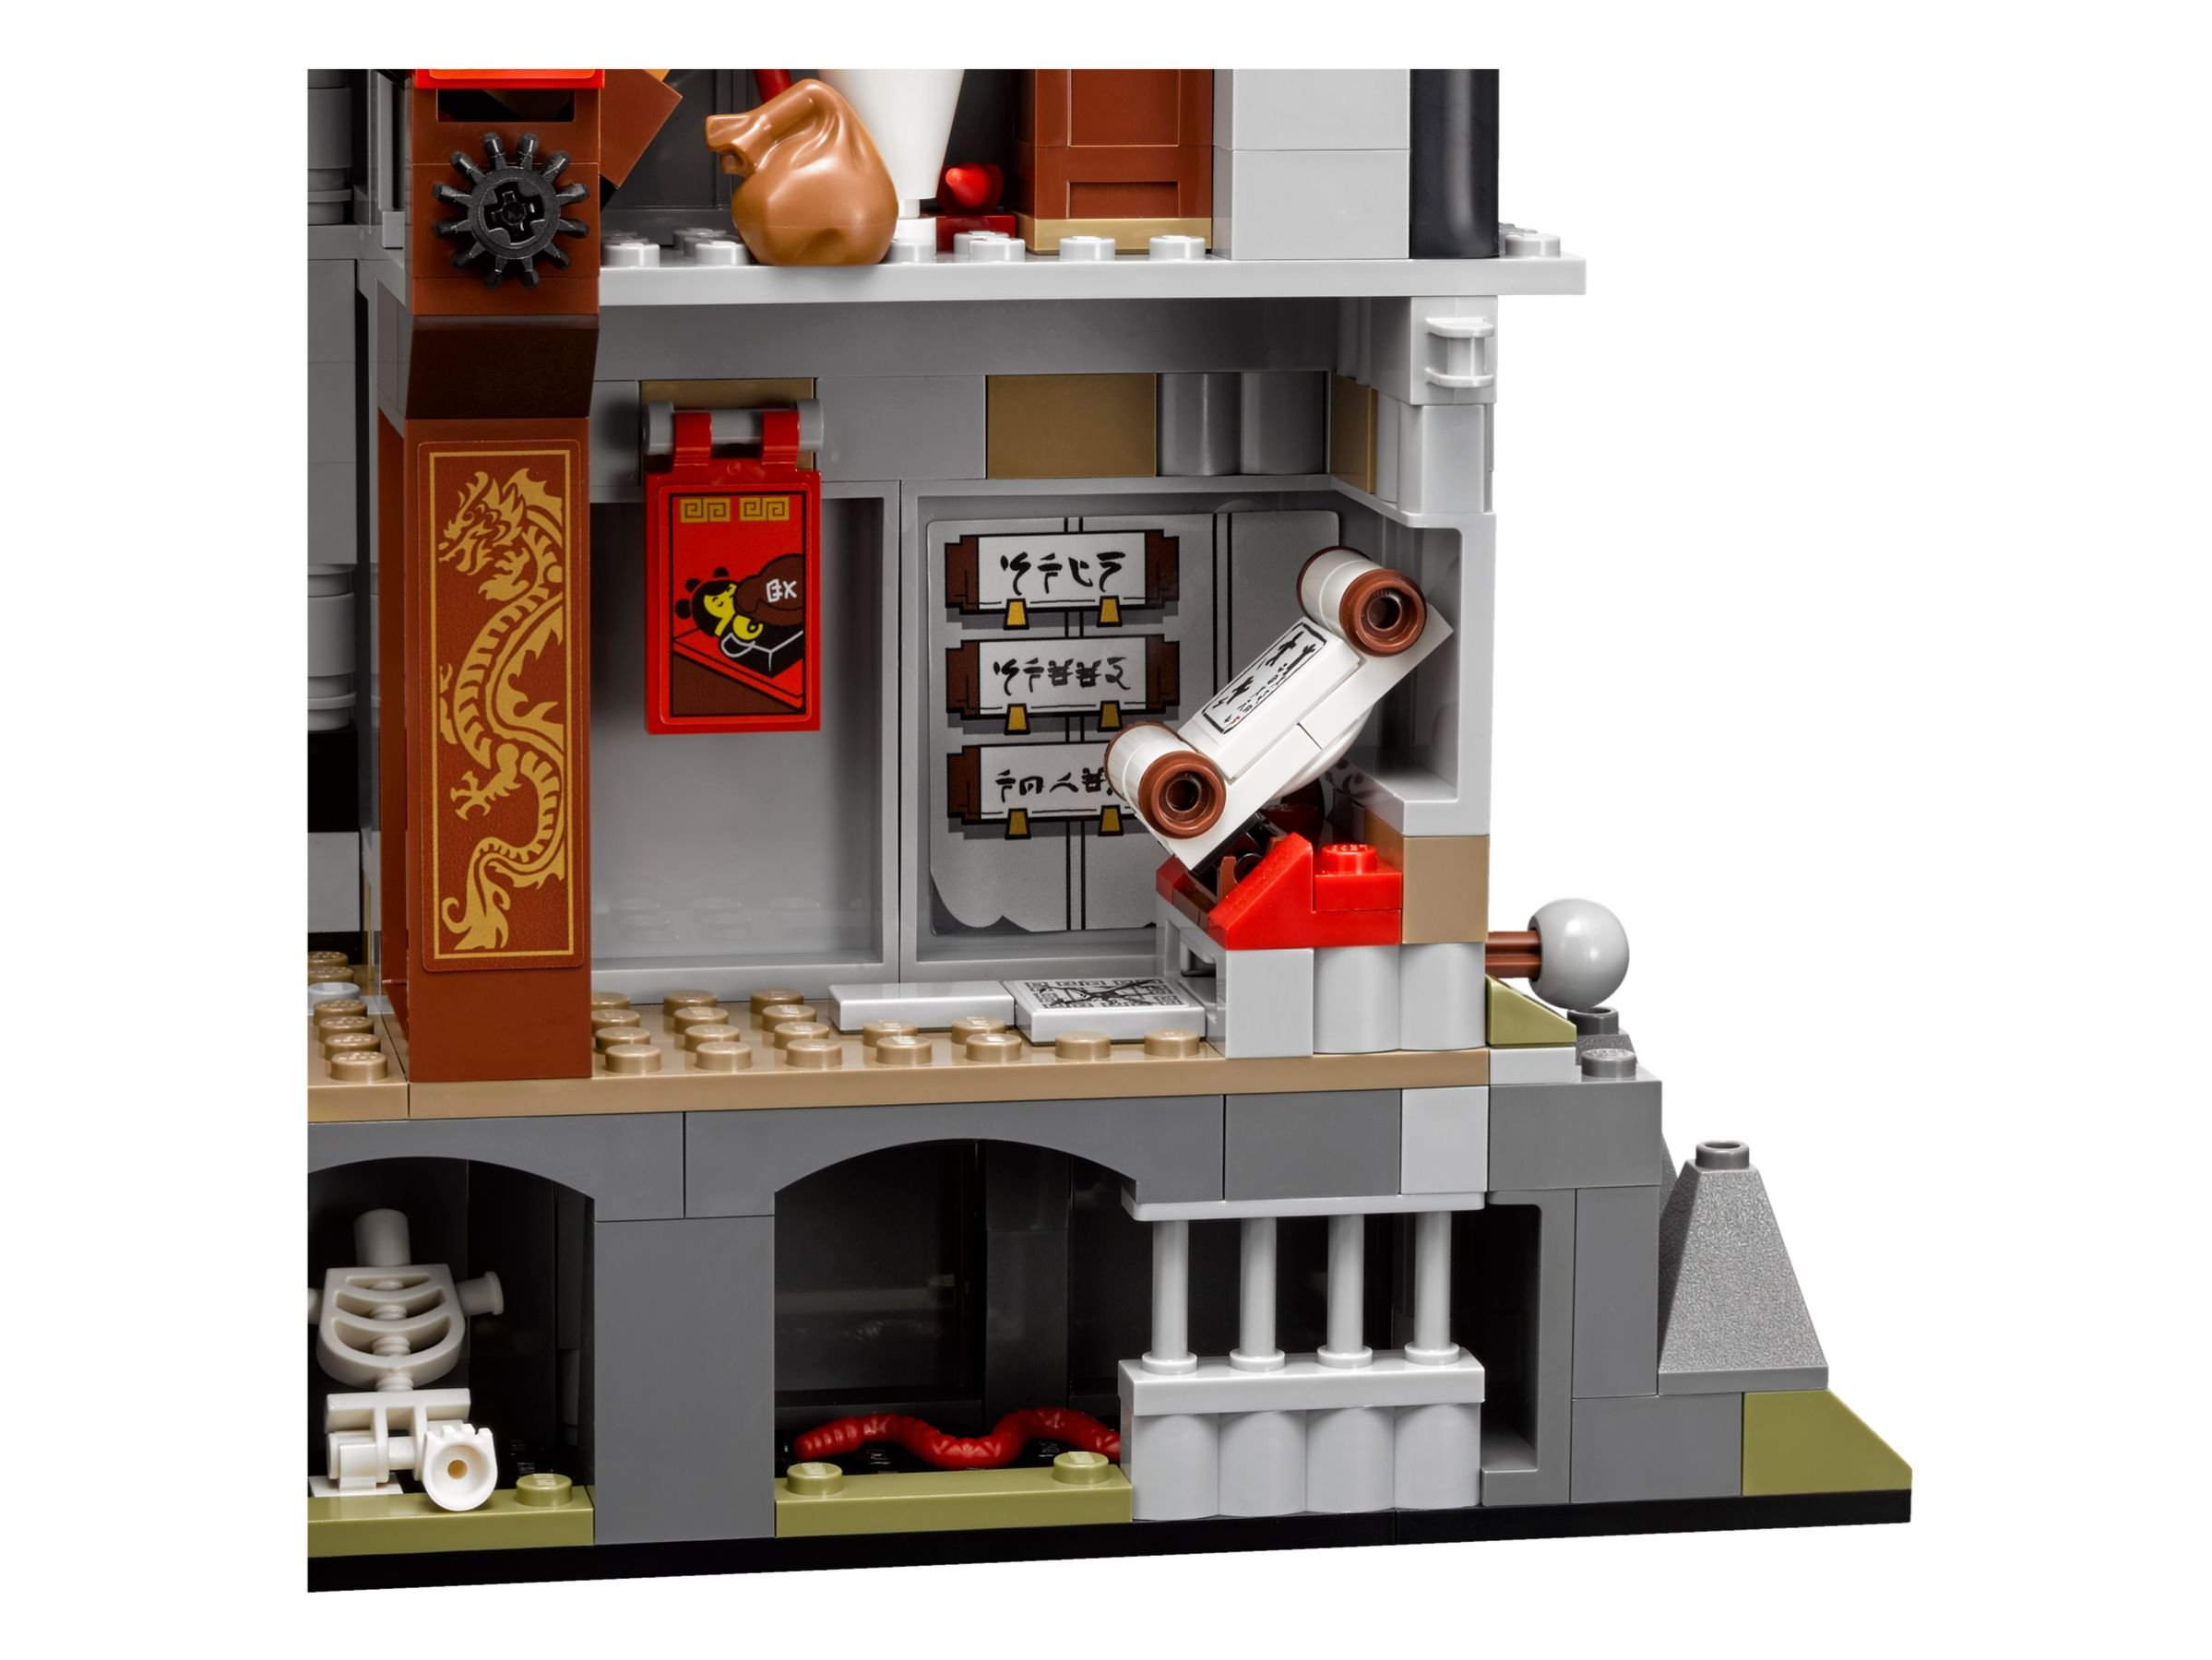 LEGO The LEGO Ninjago Movie 70617 Ultimativ ultimatives Tempel-Versteck LEGO_70617_alt7.jpg